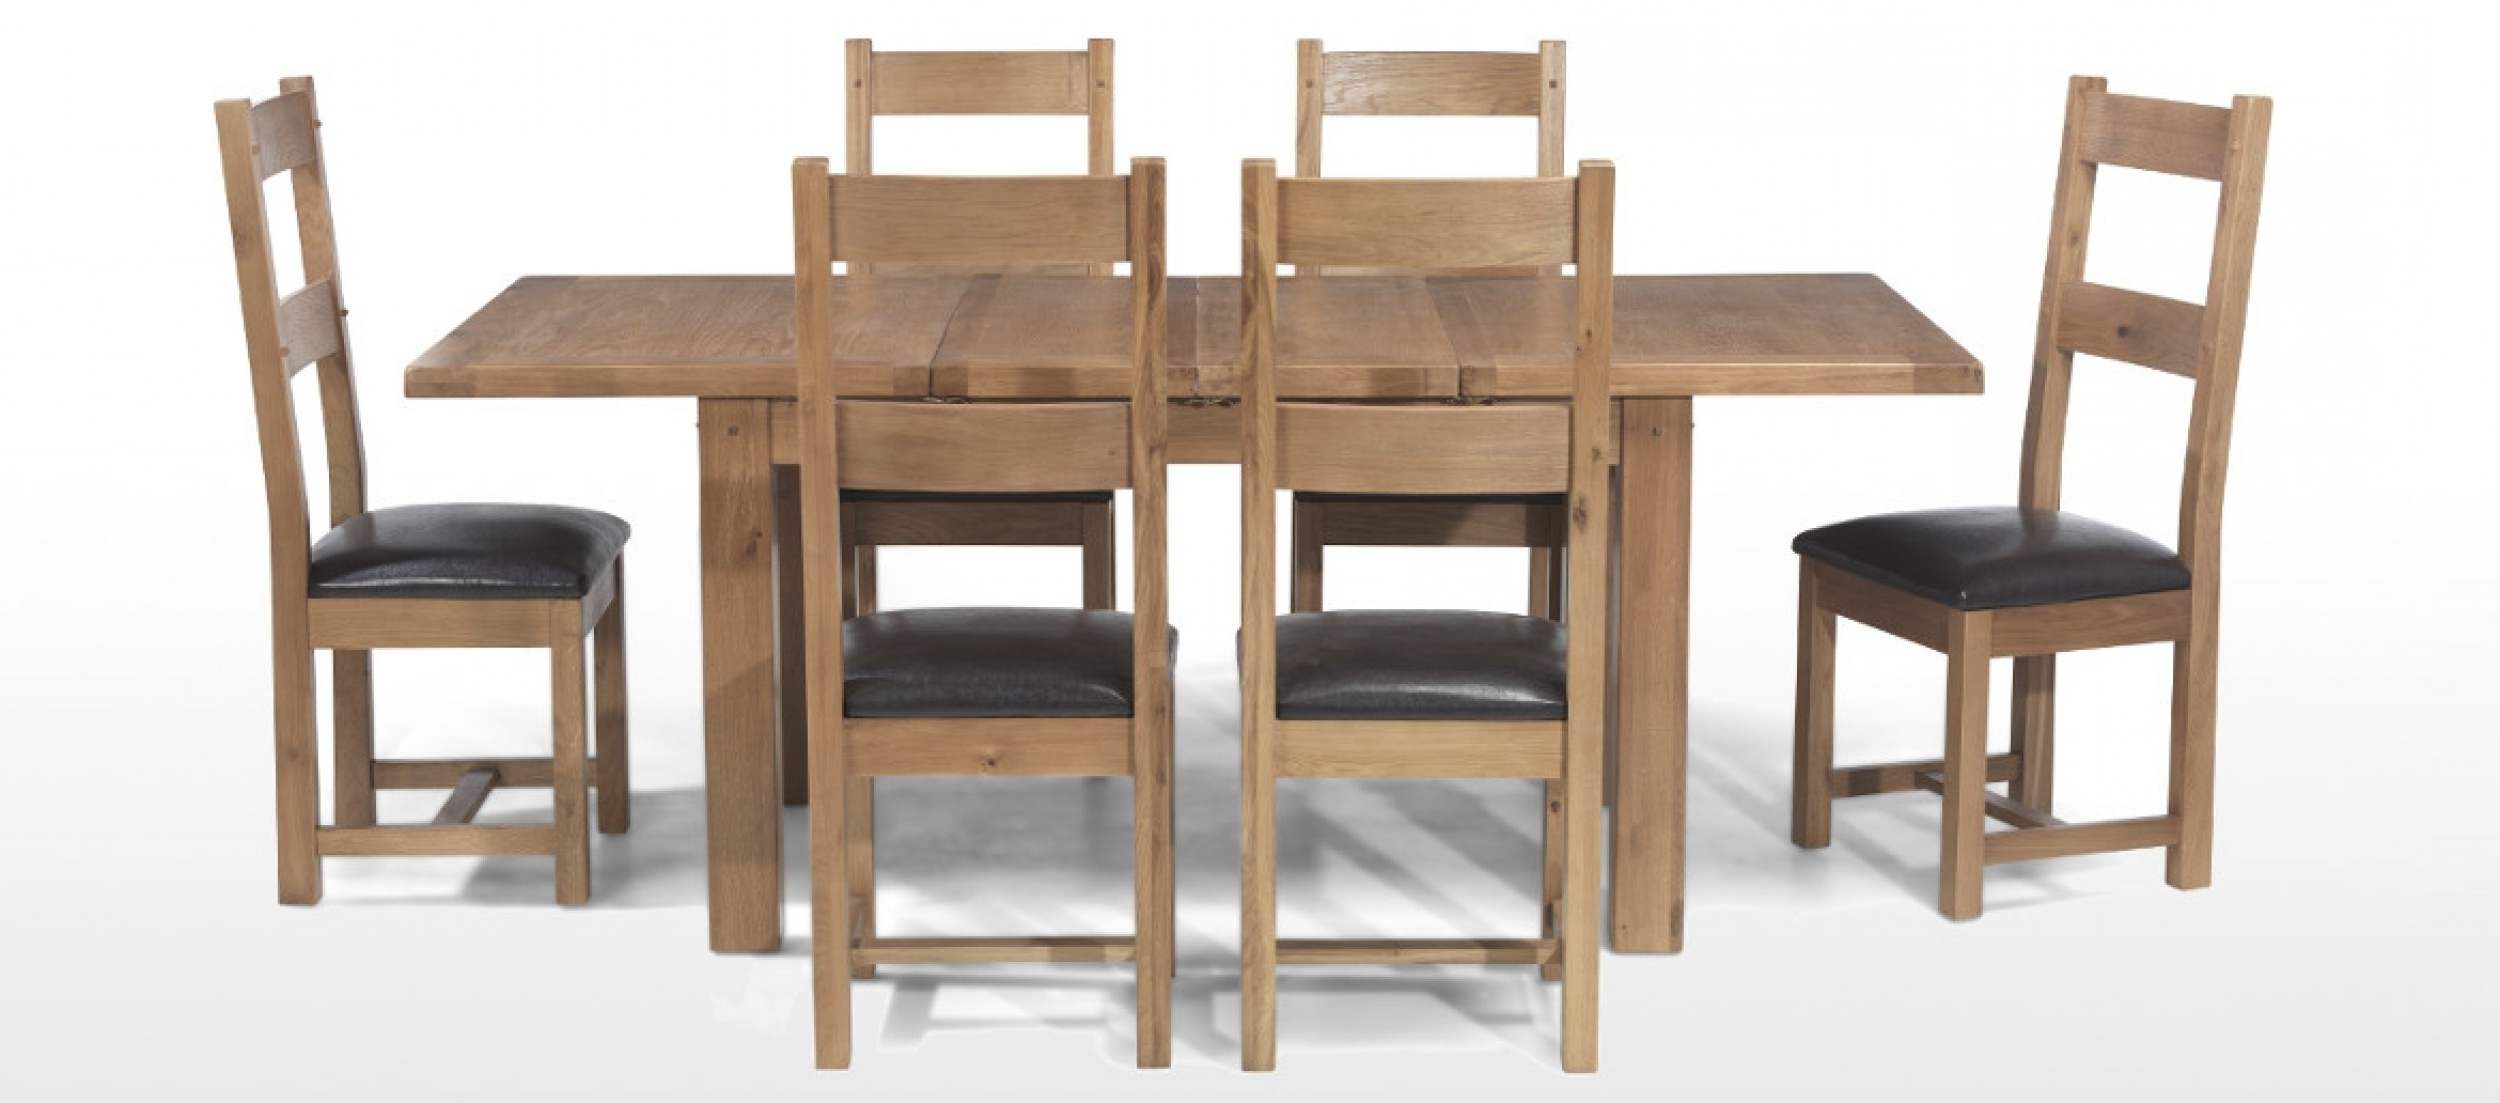 Oak Dining Set 6 Chairs With Regard To 2018 Rustic Oak 132 198 Cm Extending Dining Table And 6 Chairs (View 15 of 25)